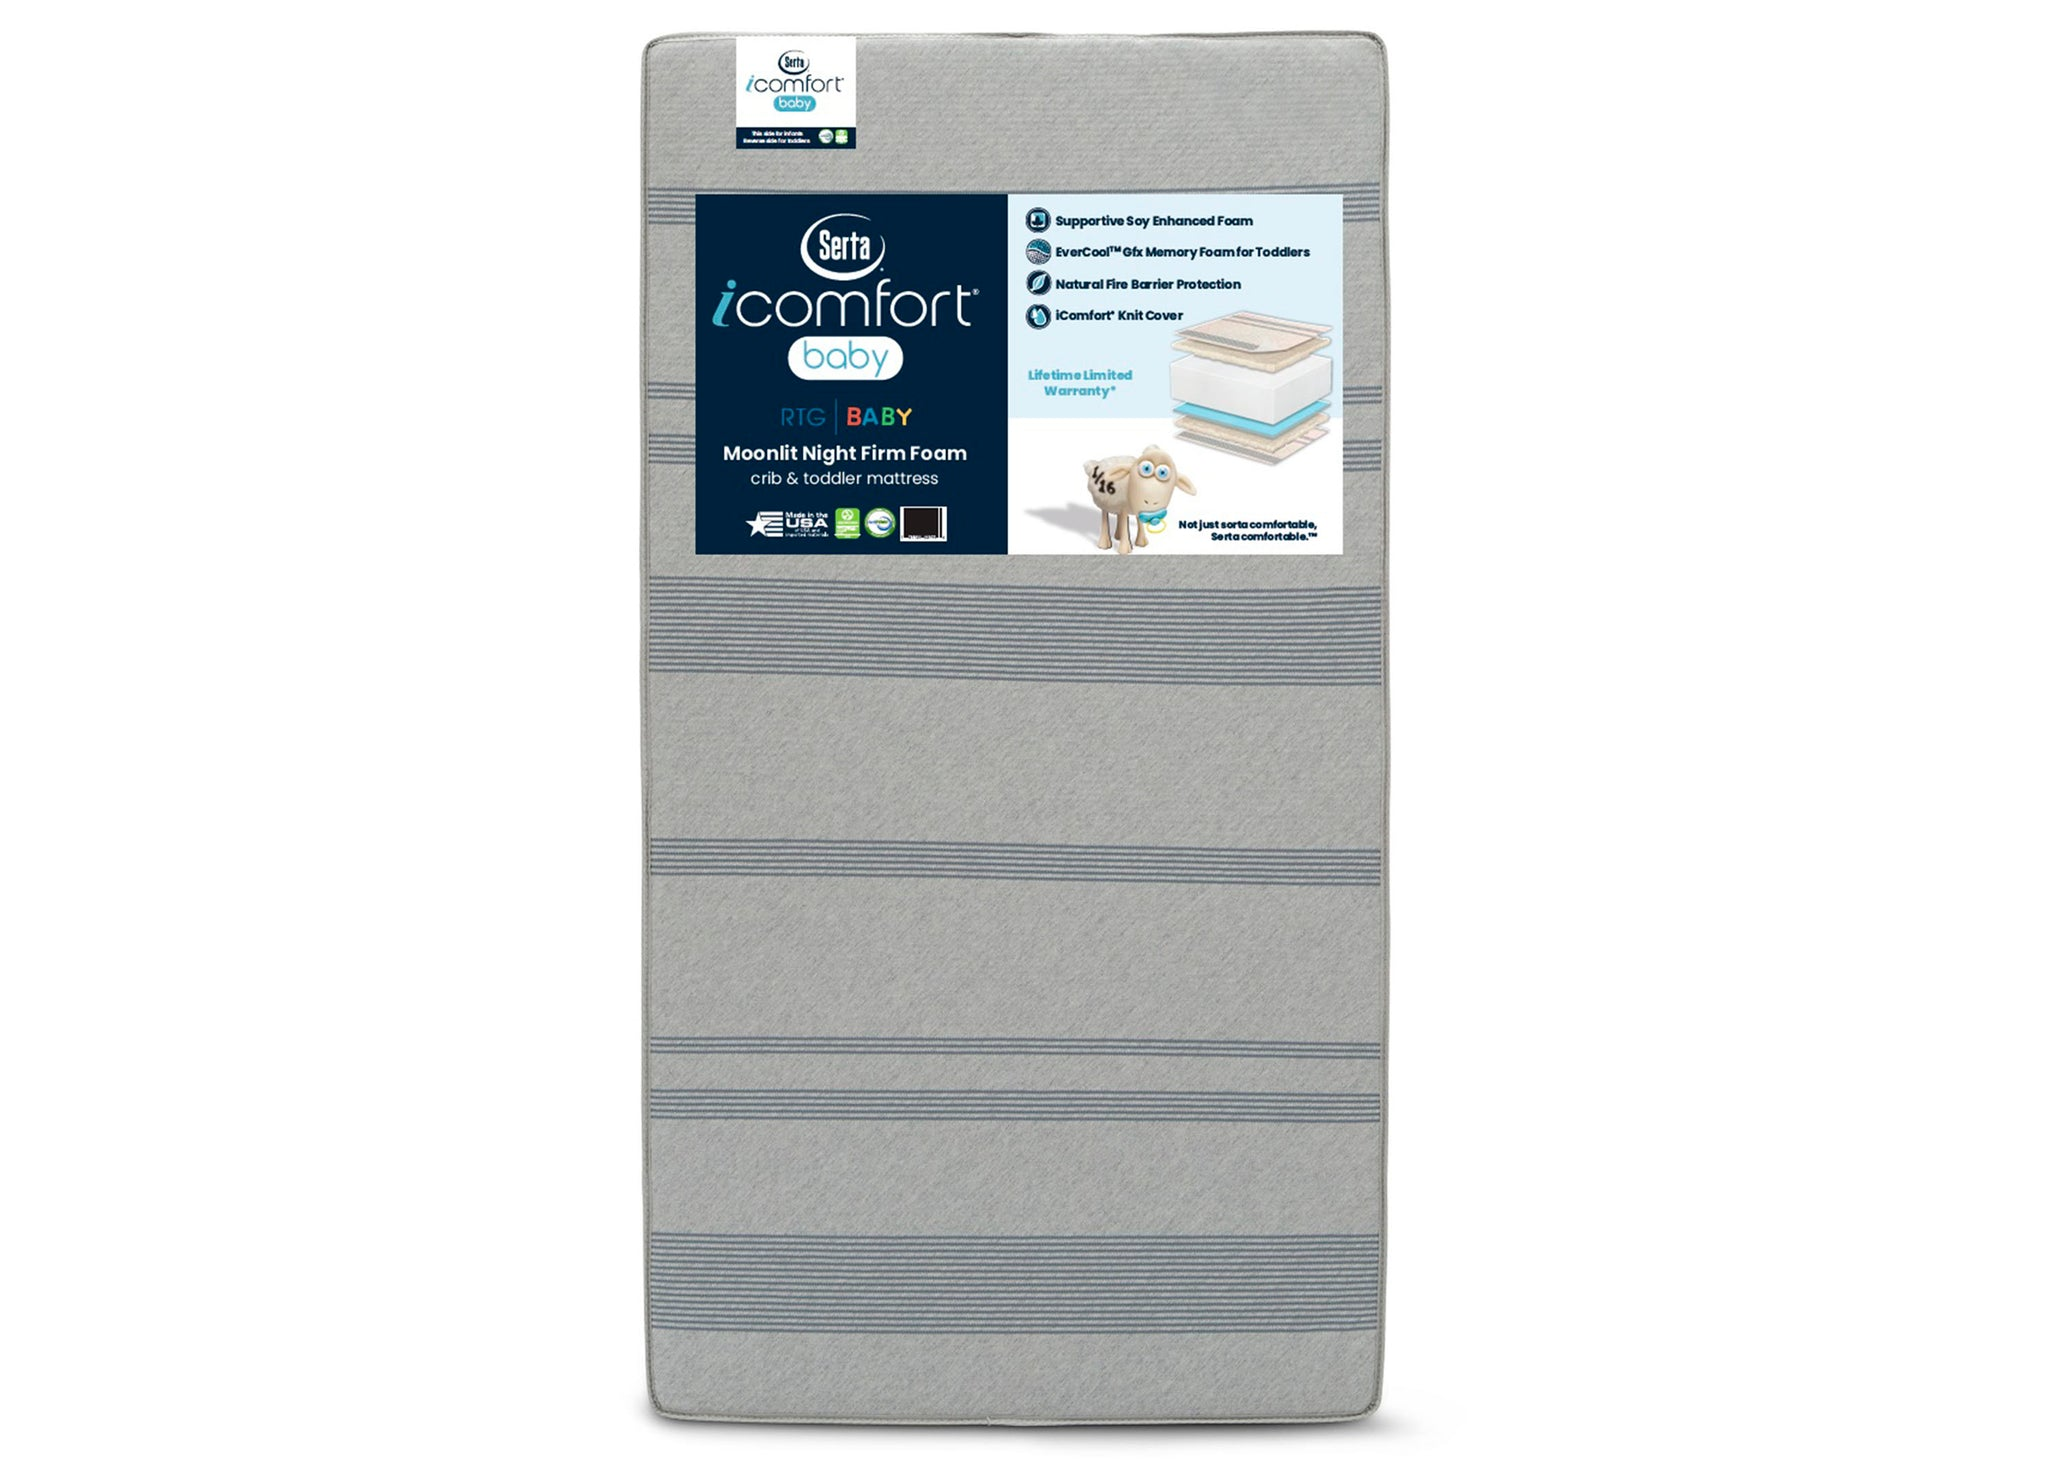 Serta iComfort Baby Moonlit Night Firm Foam Crib and Toddler Mattress, Main View No Color (NO)